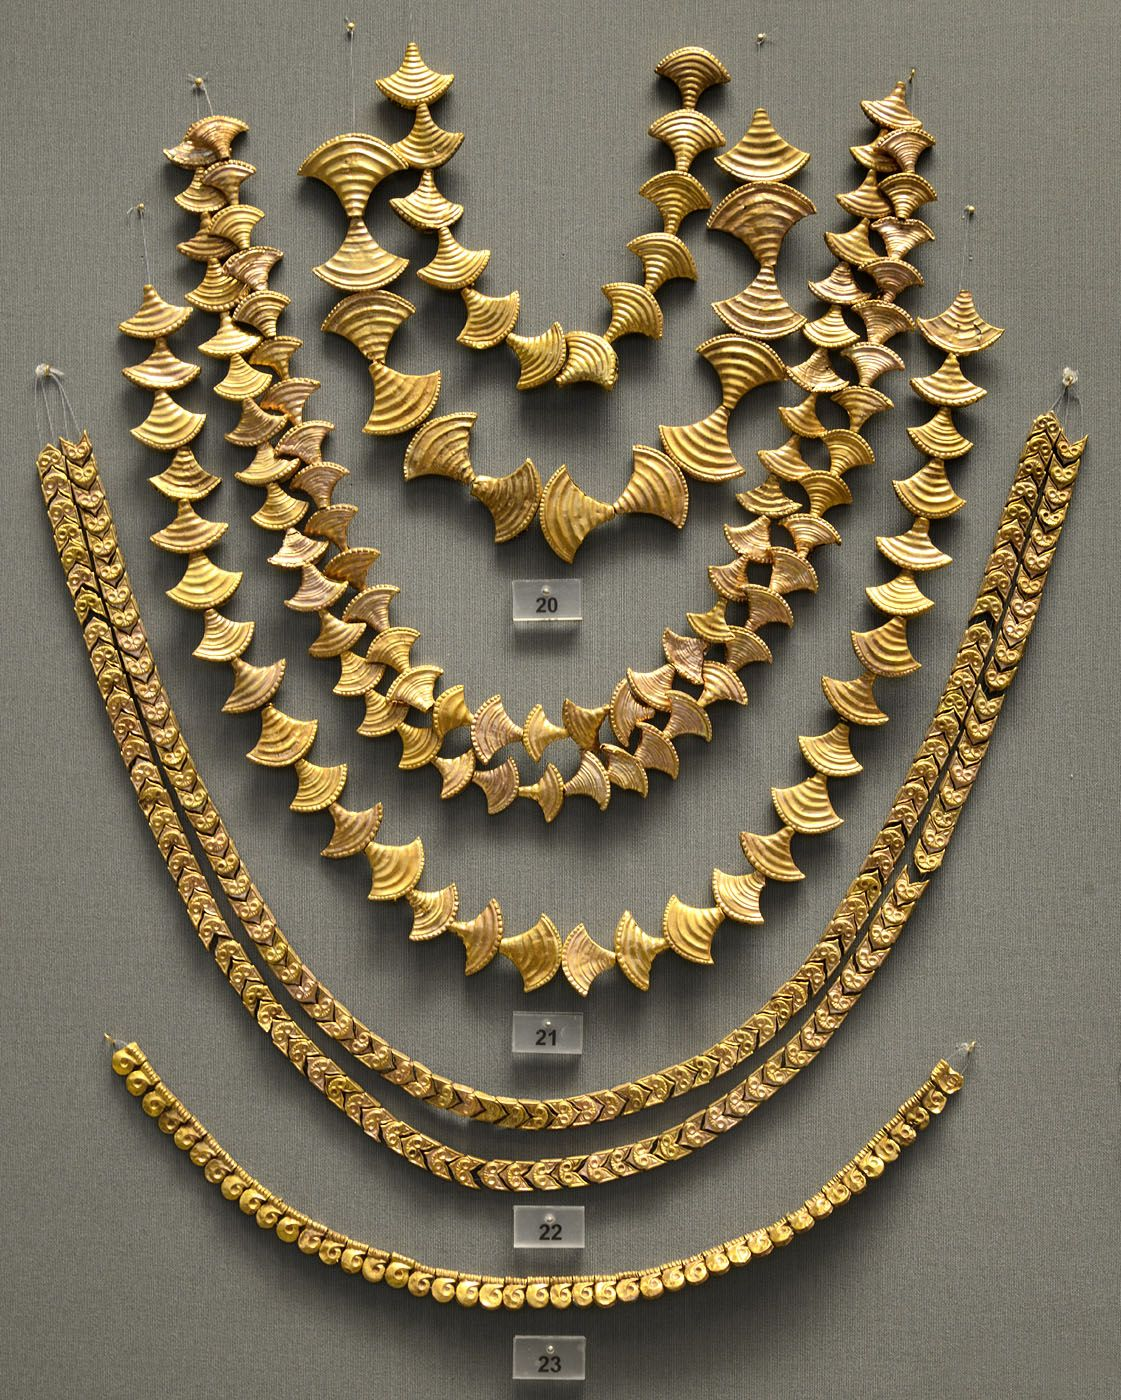 Gold necklaces from chamber tombs in Mycenae. 1600—1200 ...